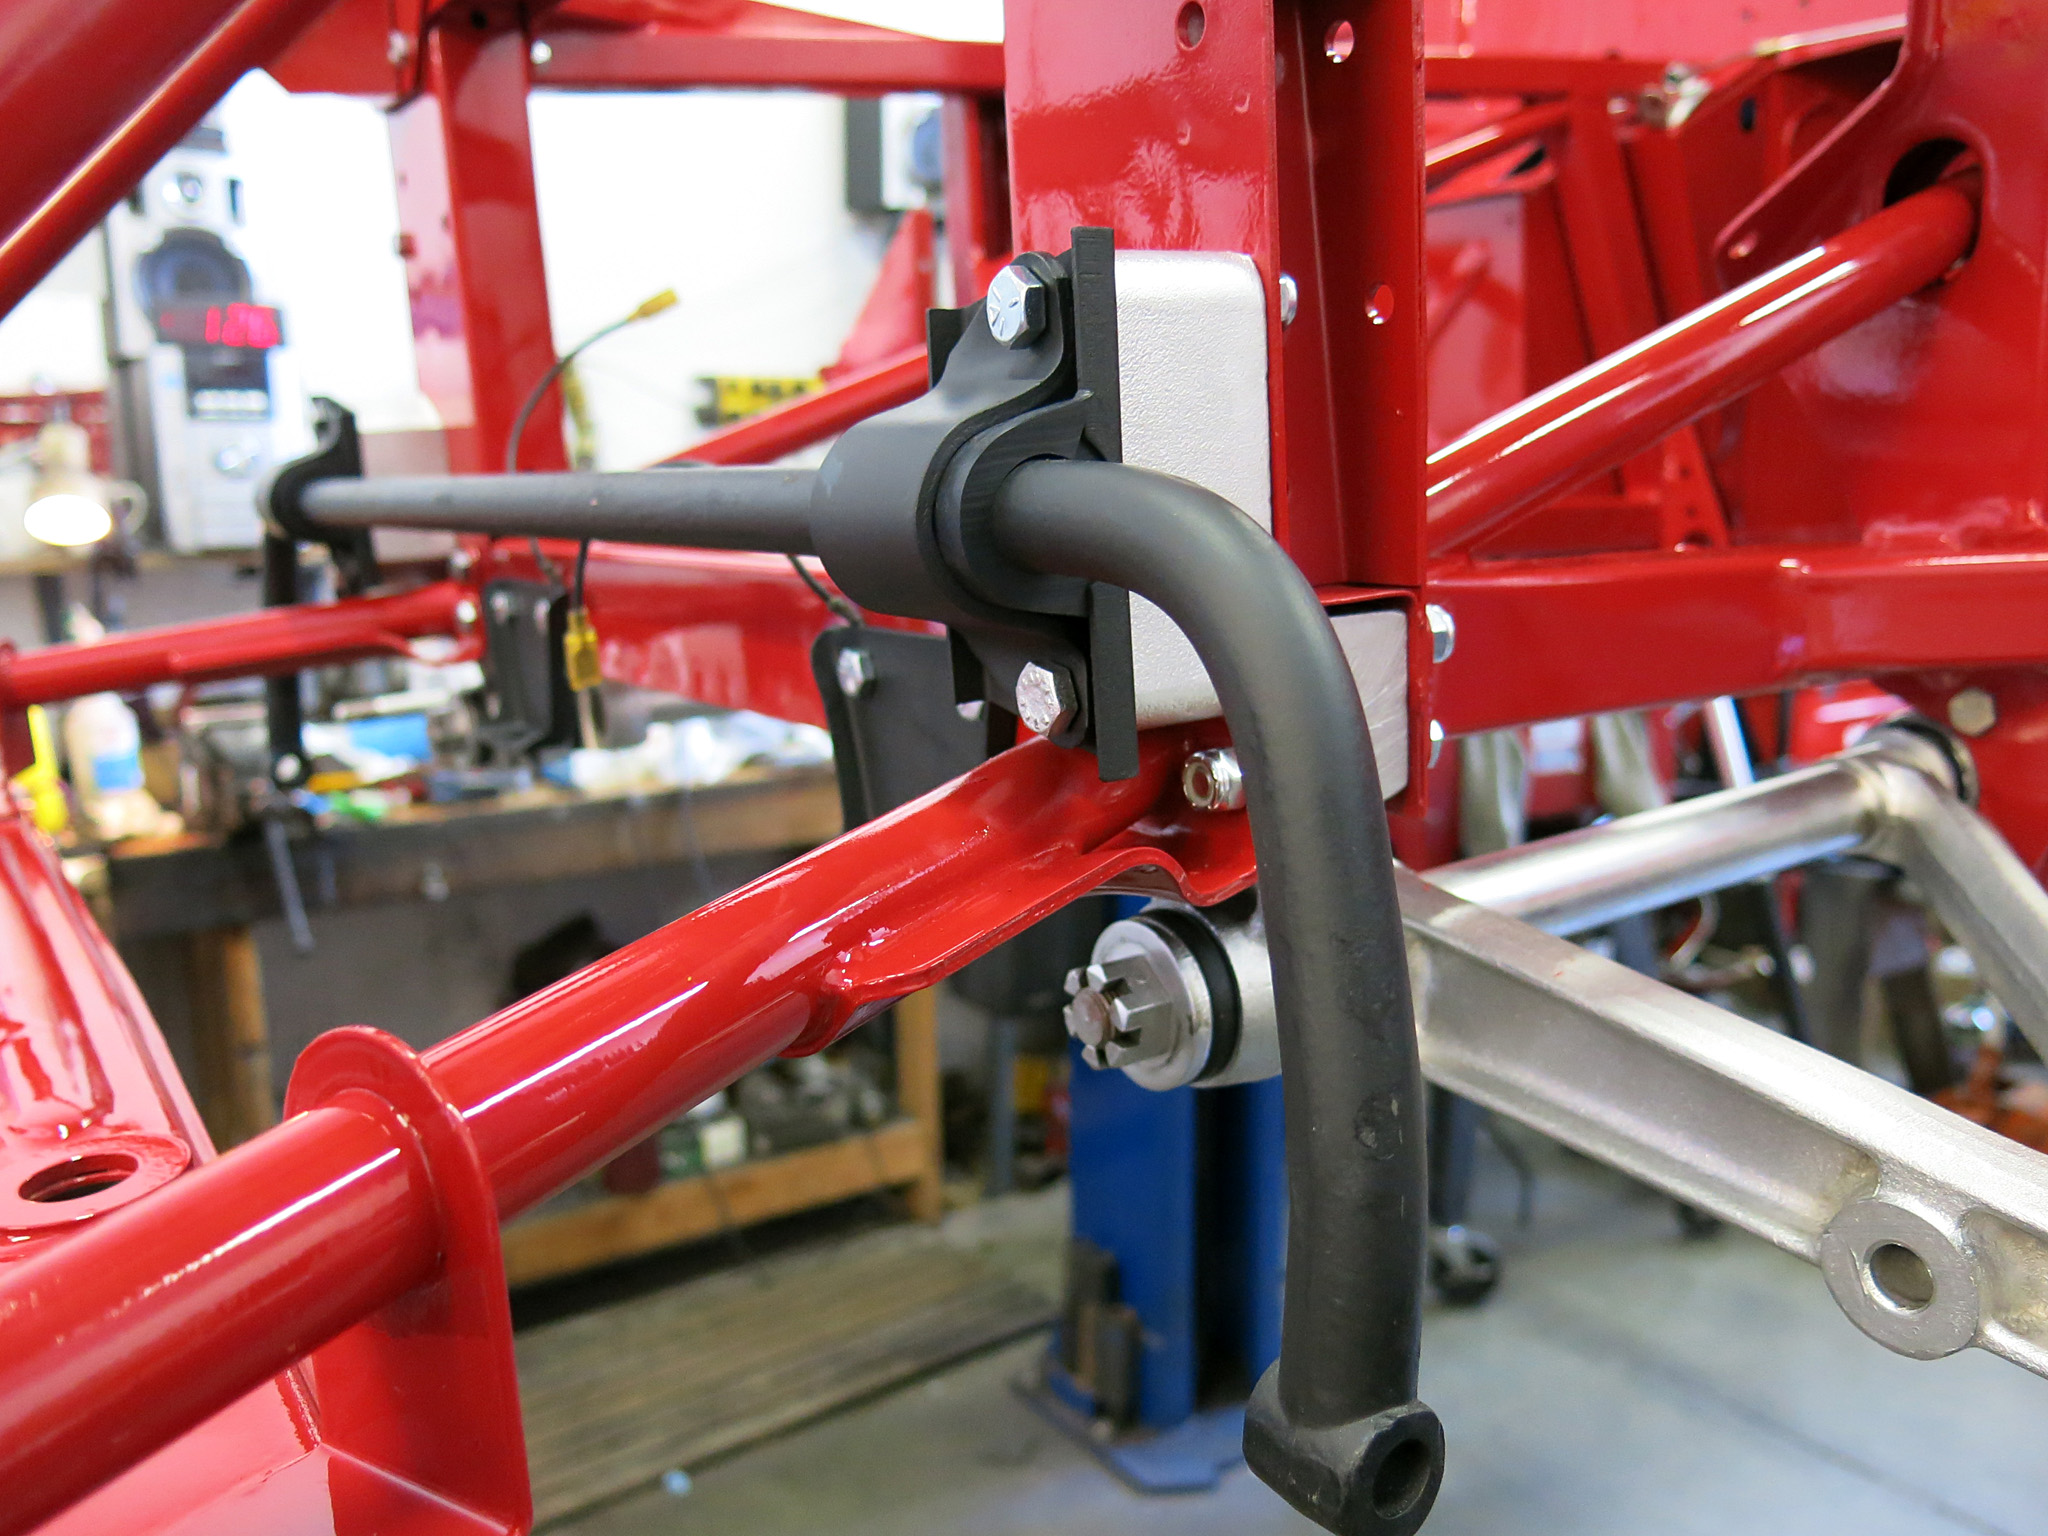 STEP 12 - Loosely attach the sway bar. Only two bolts hold on the sway bar but they pass through more layers than anything else on the car. Usually a second person is helpful here not to scratch the paint and keep all the pieces intact before the long bolts can be threaded through.